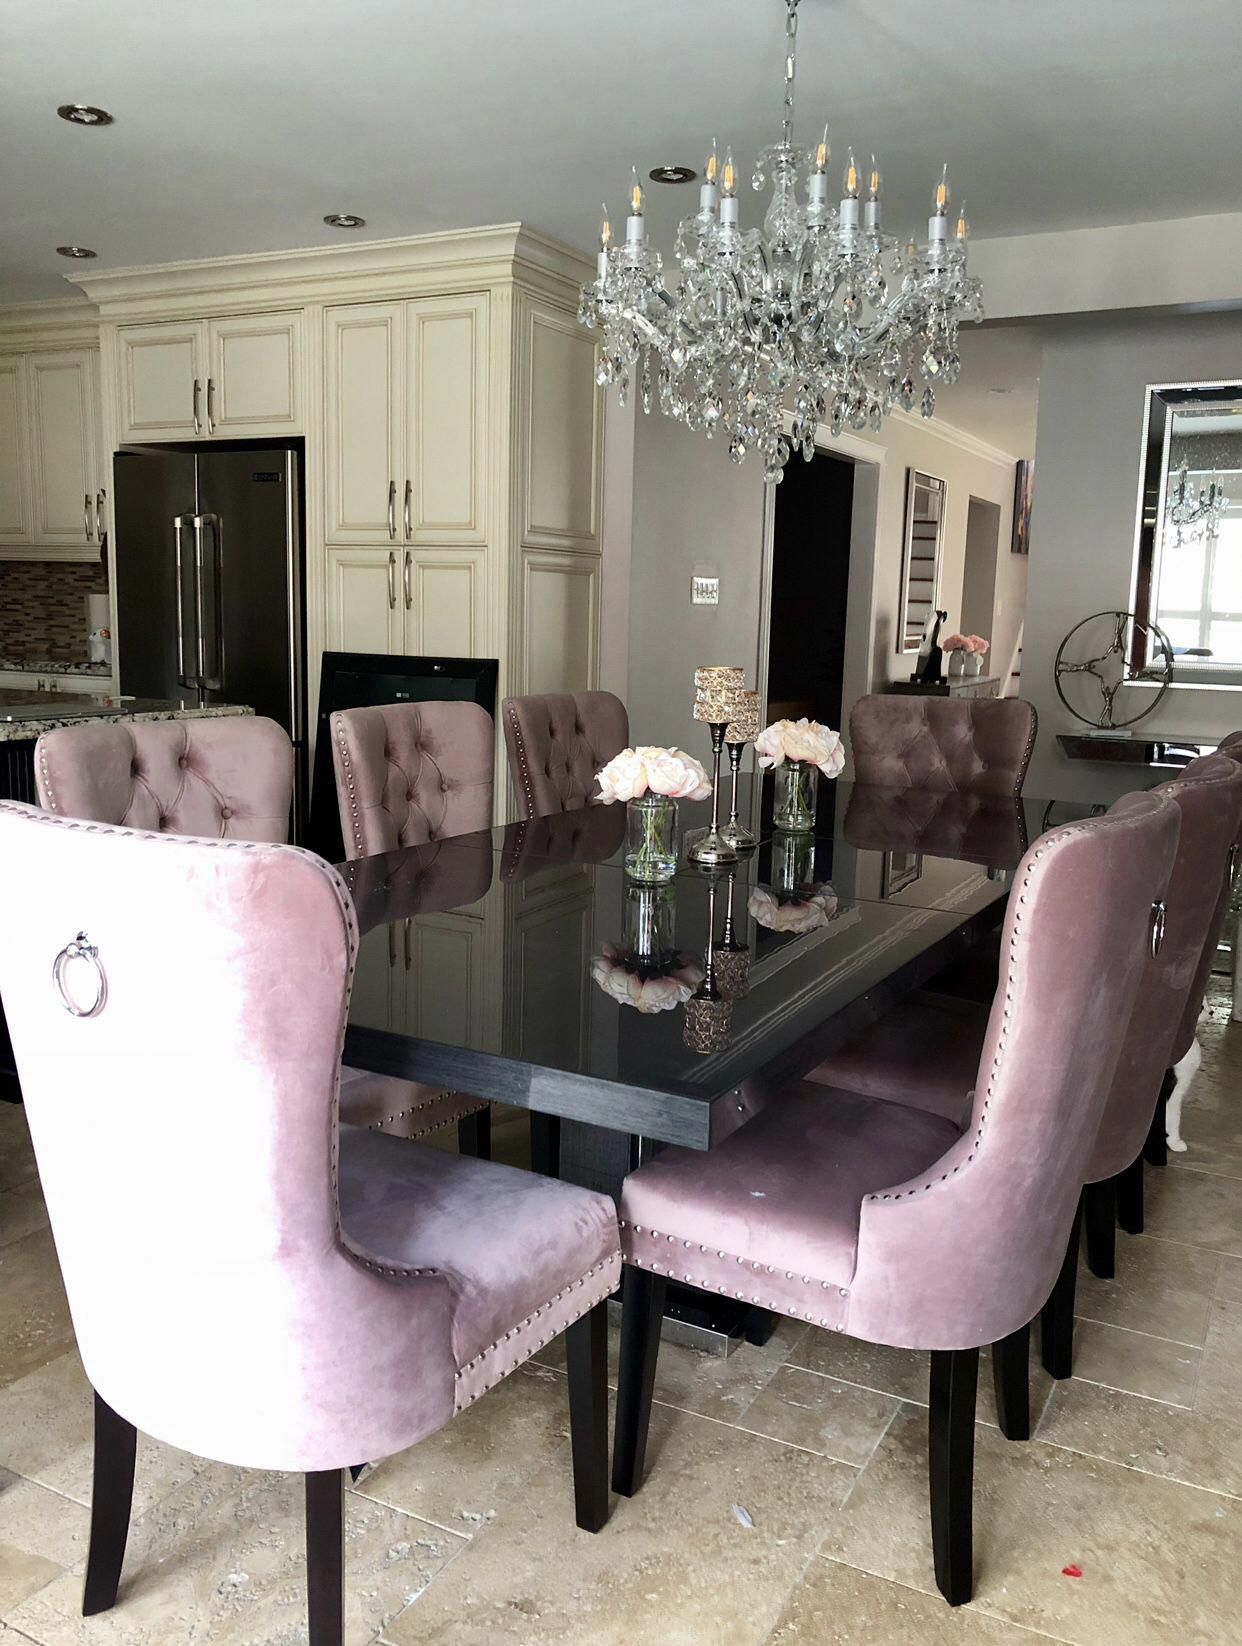 Blush Pink Tufted Dining Chairs Tufteddiningchairs Pink Dining Chairs Upholstered Dining Chairs Tufted Dining